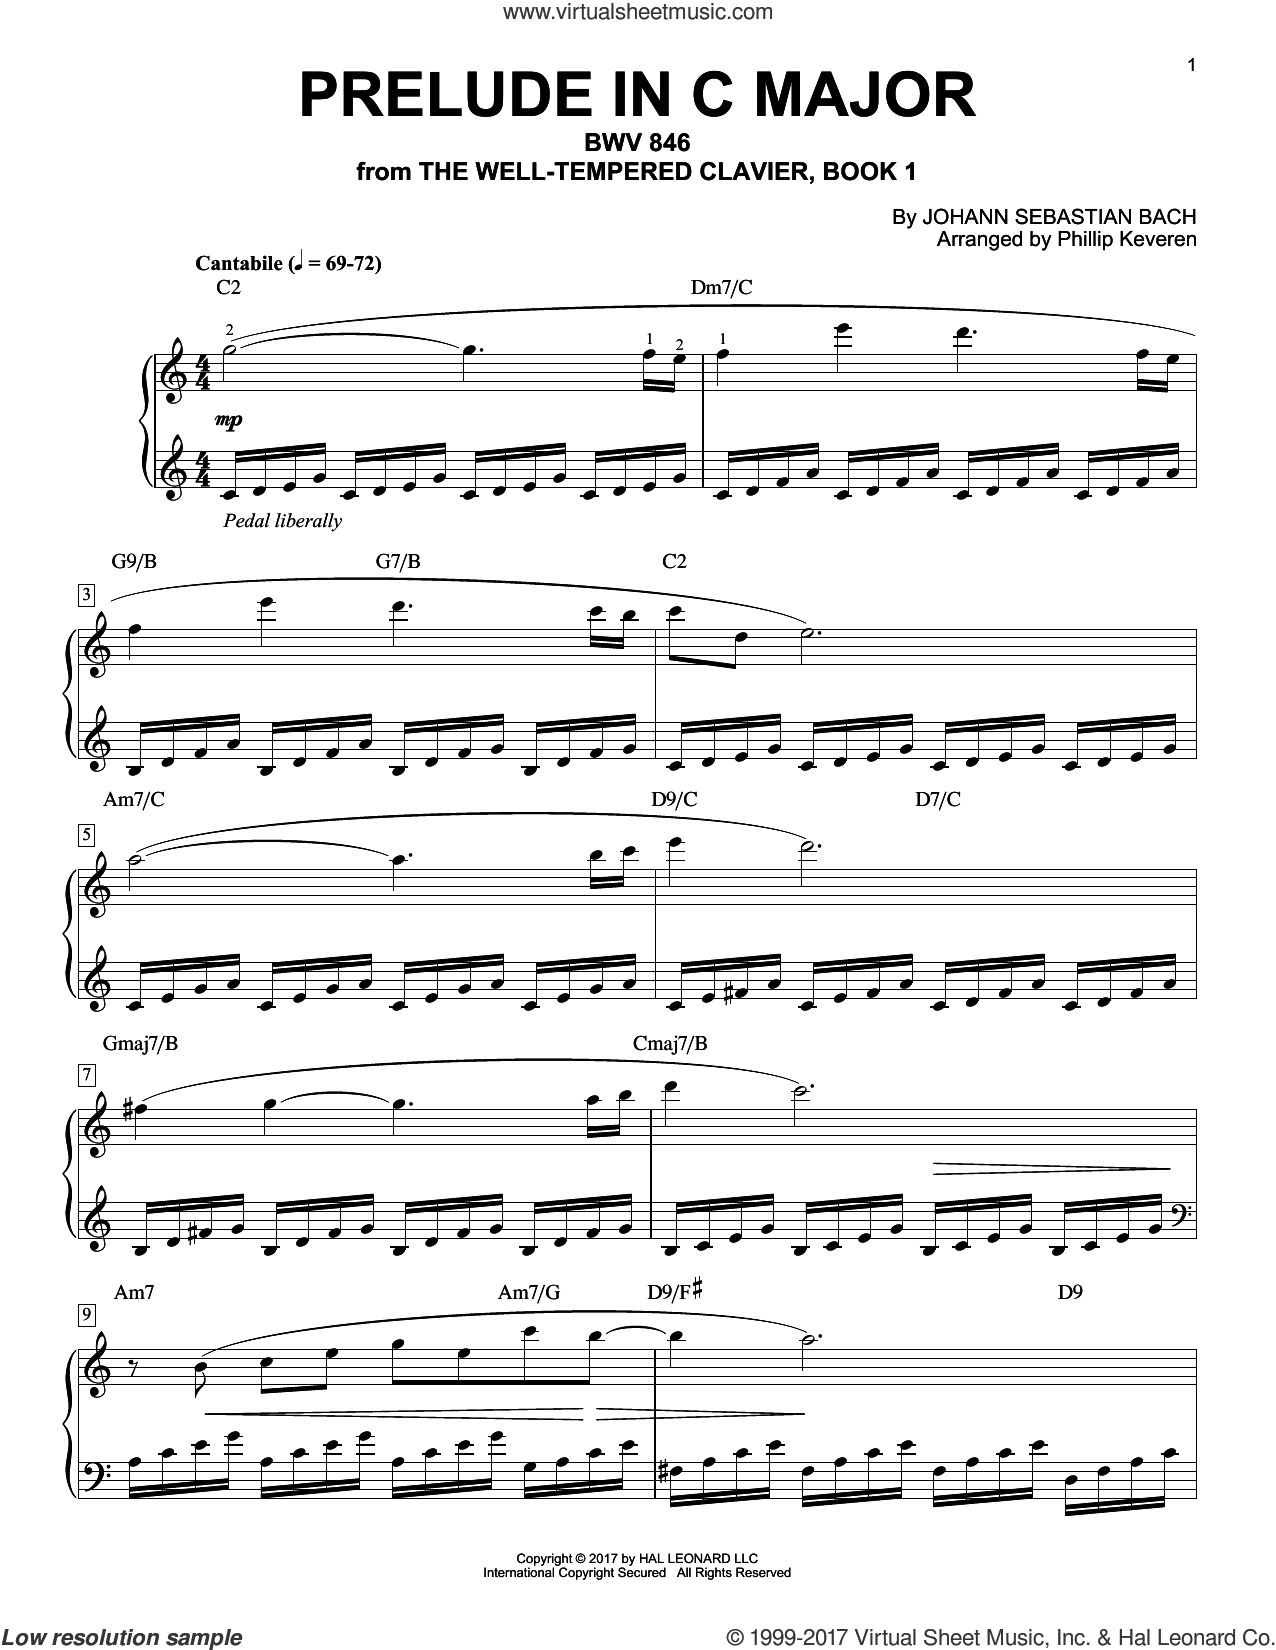 Prelude In C Major, BWV 846 sheet music for piano solo by Johann Sebastian Bach and Phillip Keveren, classical score, intermediate skill level